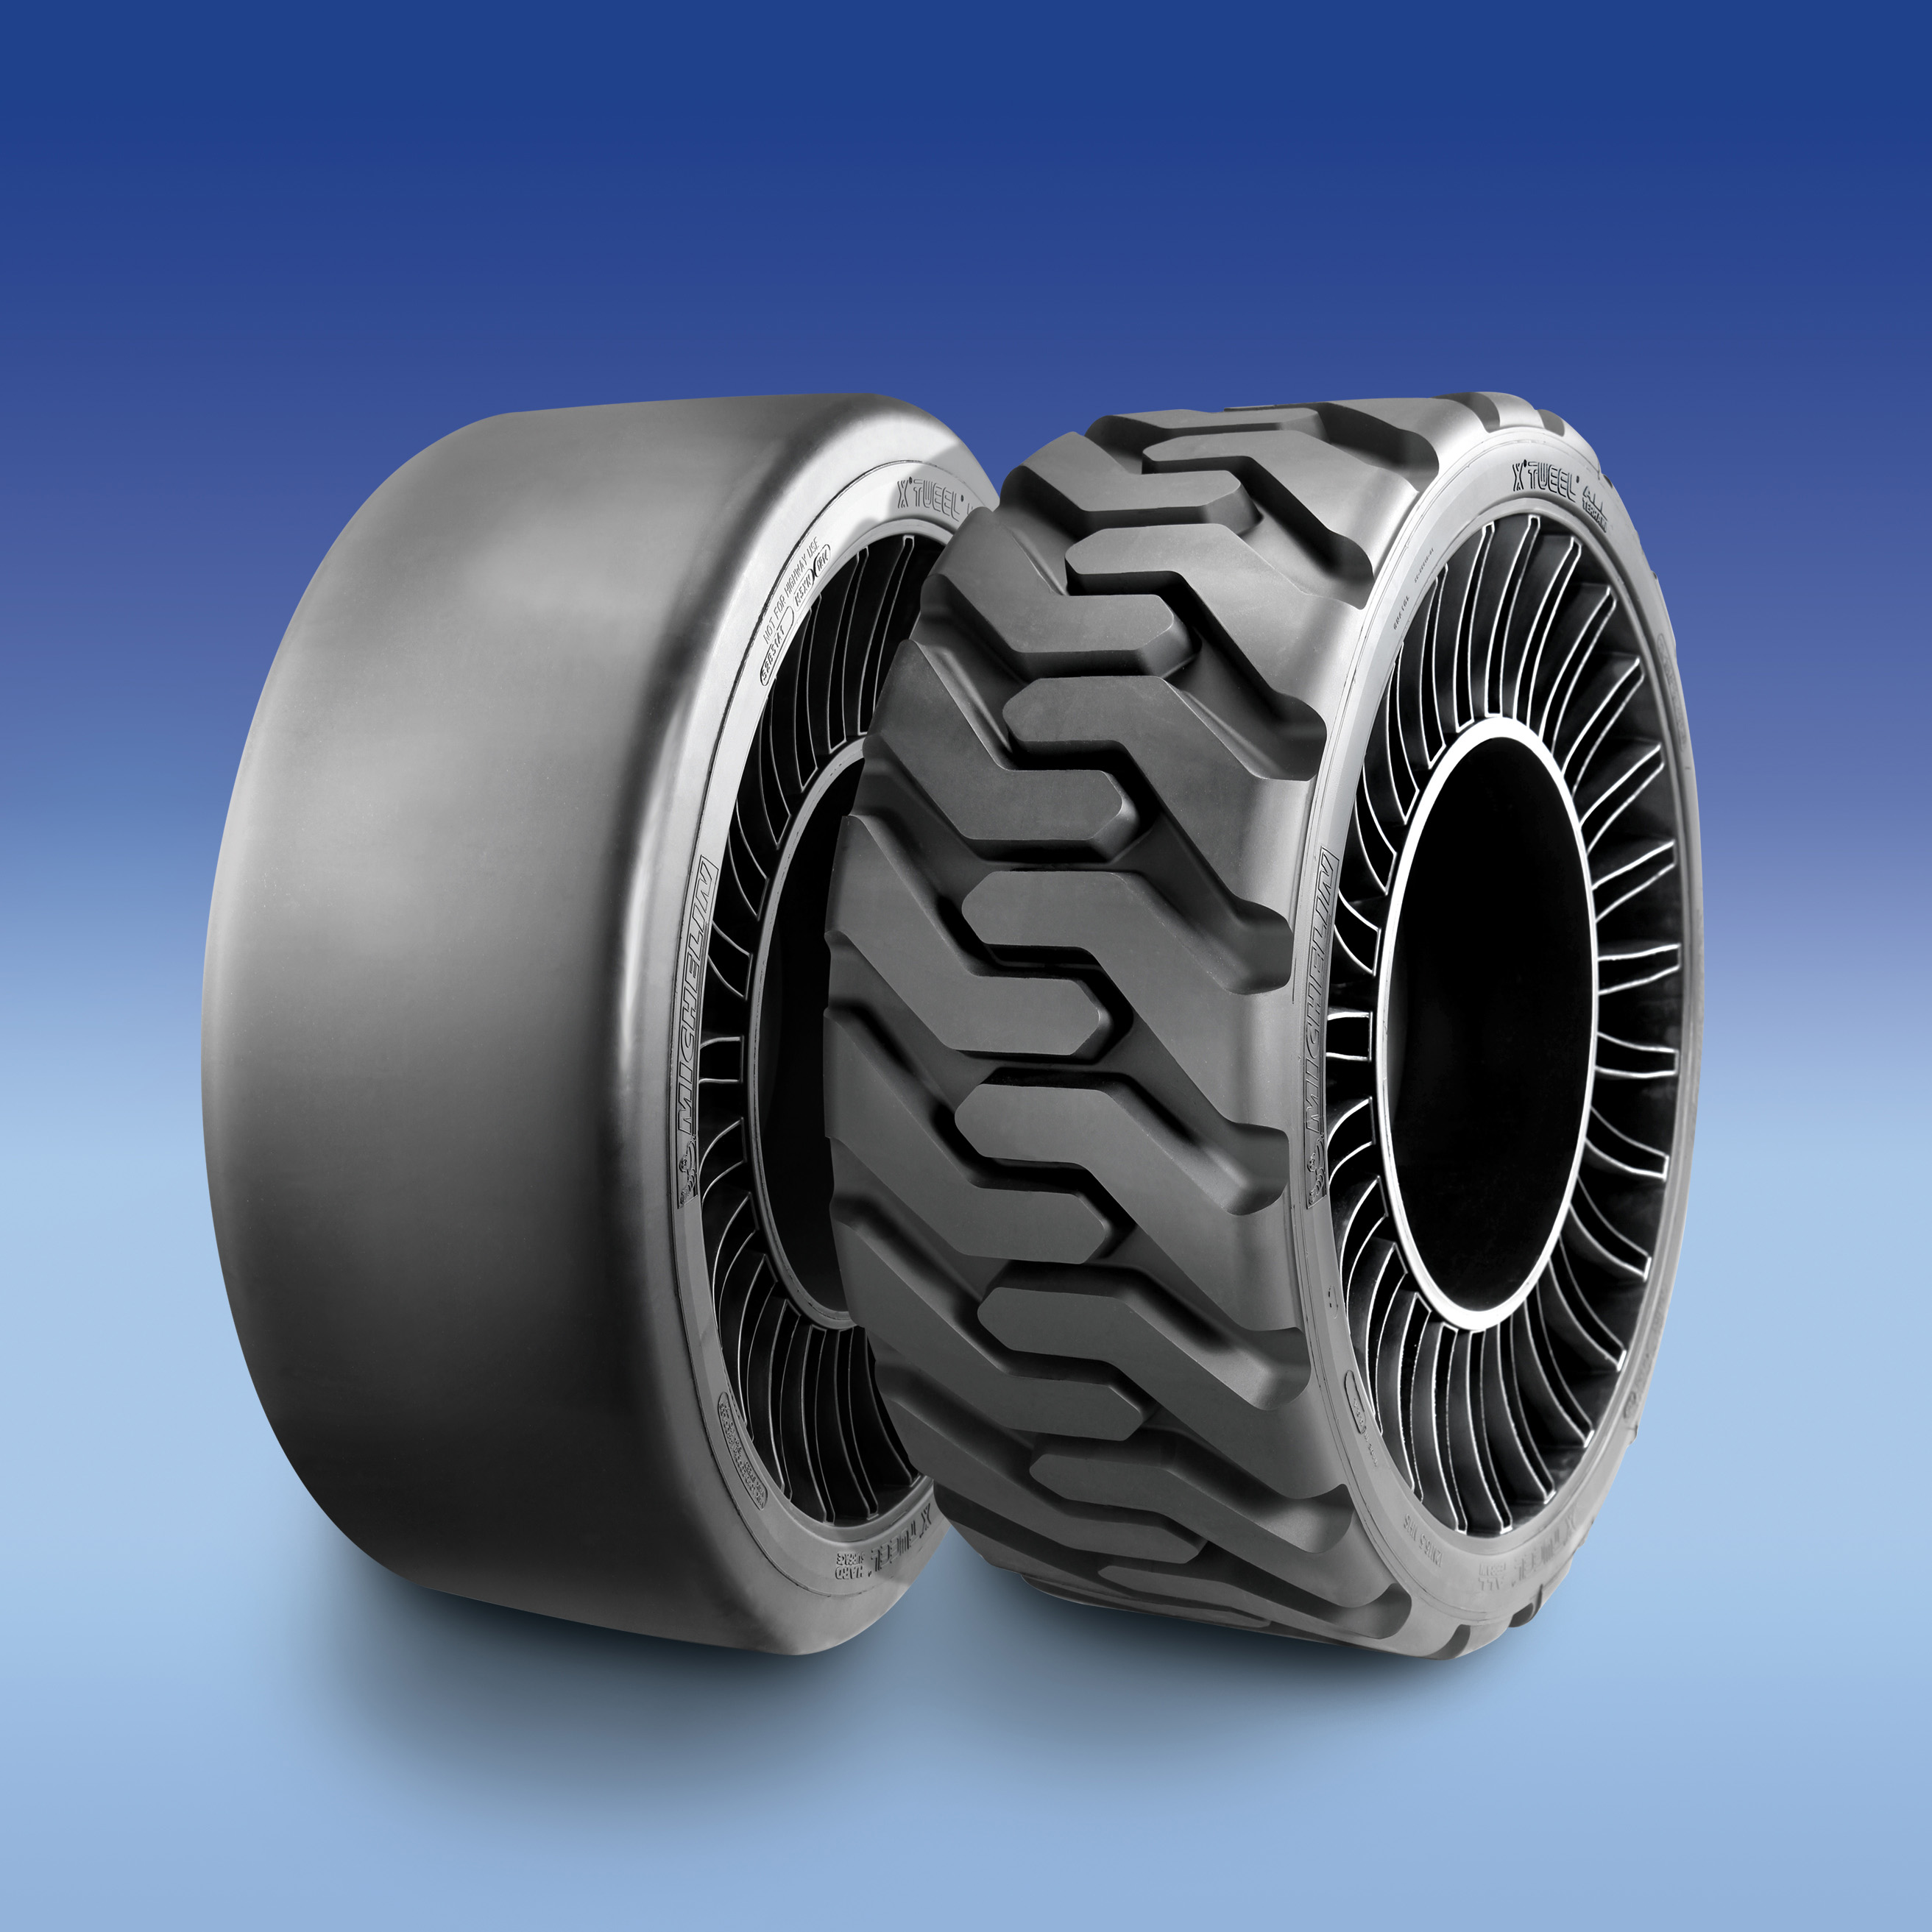 Michelin tweel technologies expands line up of skid steer airless radials